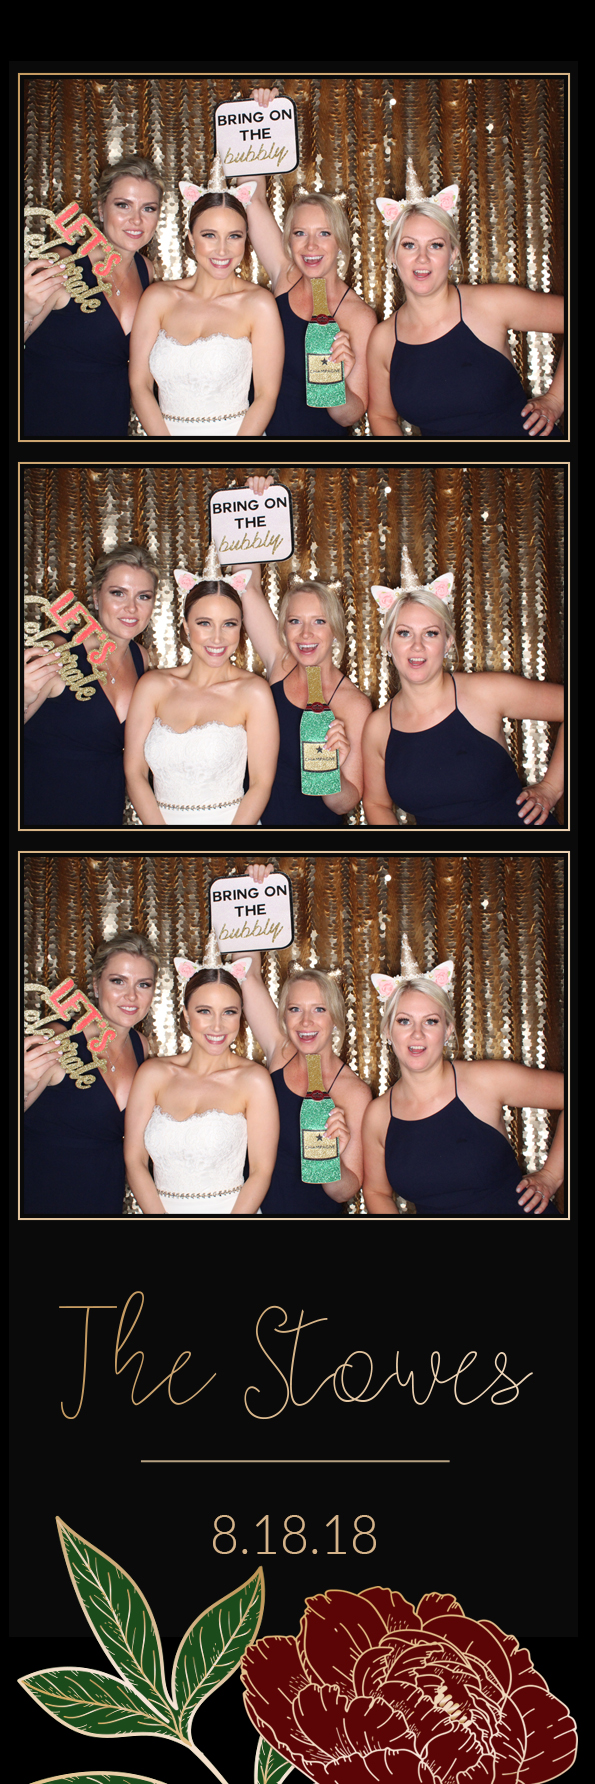 Rose Photo Booth